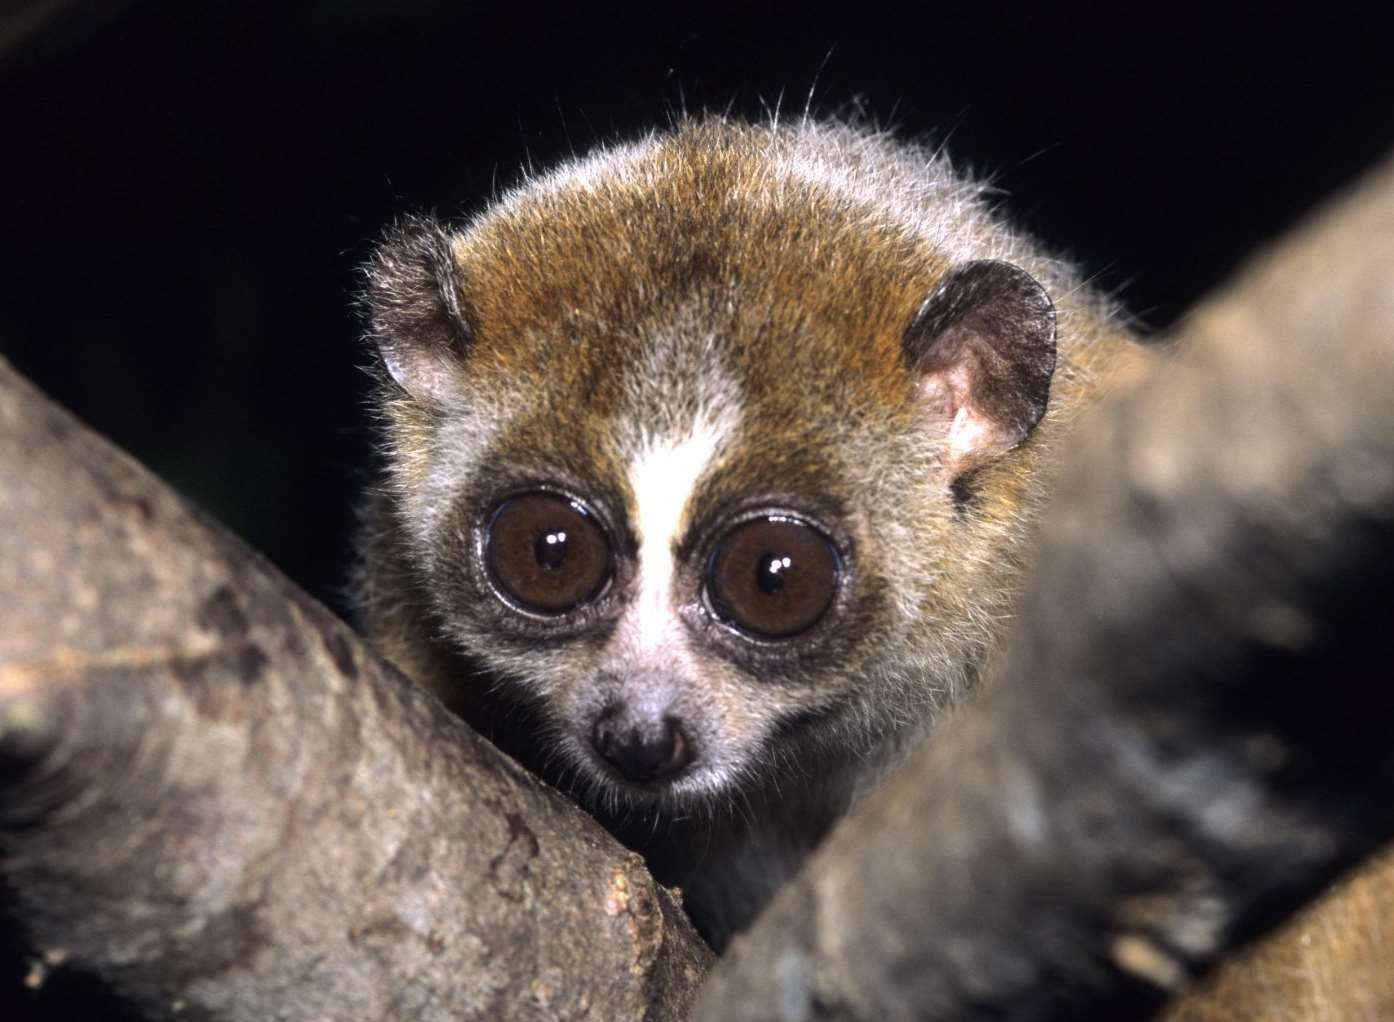 The pygmy slow loris looks cute but can deliver a deadly bite. Picture: David Haring/Duke Lemur Center, North Carolina/Wikimedia Commons